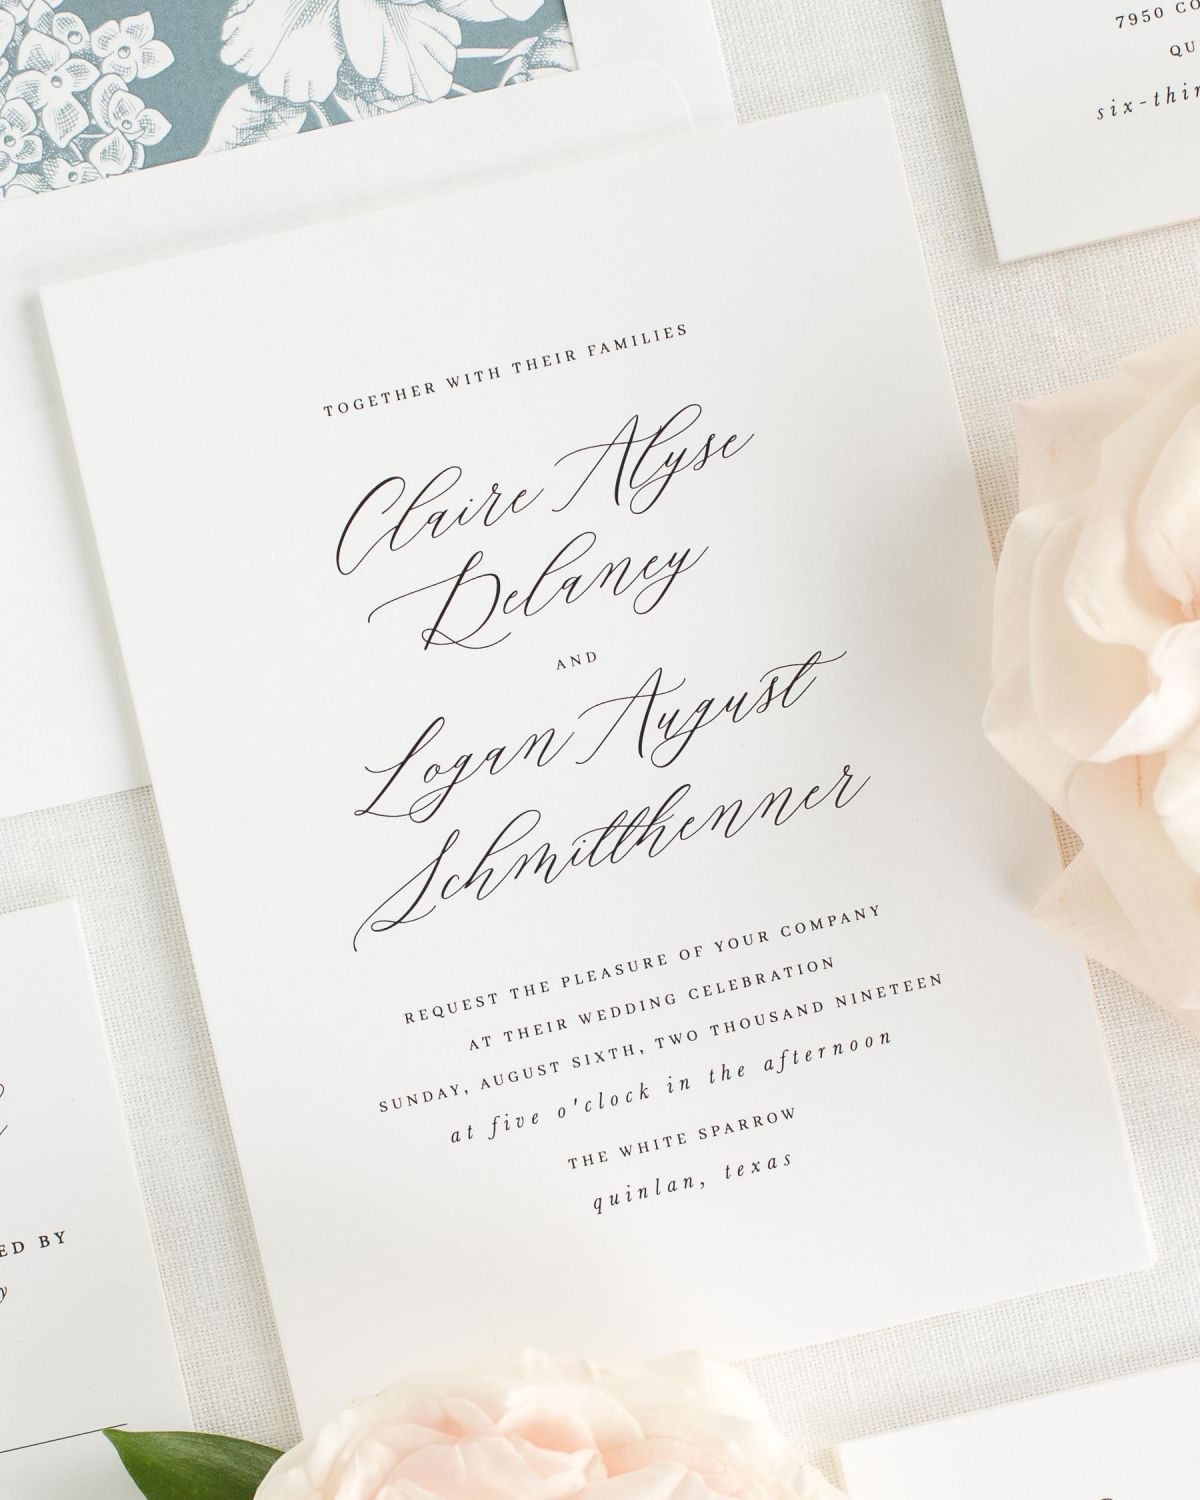 Claire Wedding Invitations - Wedding Invitations by Shine